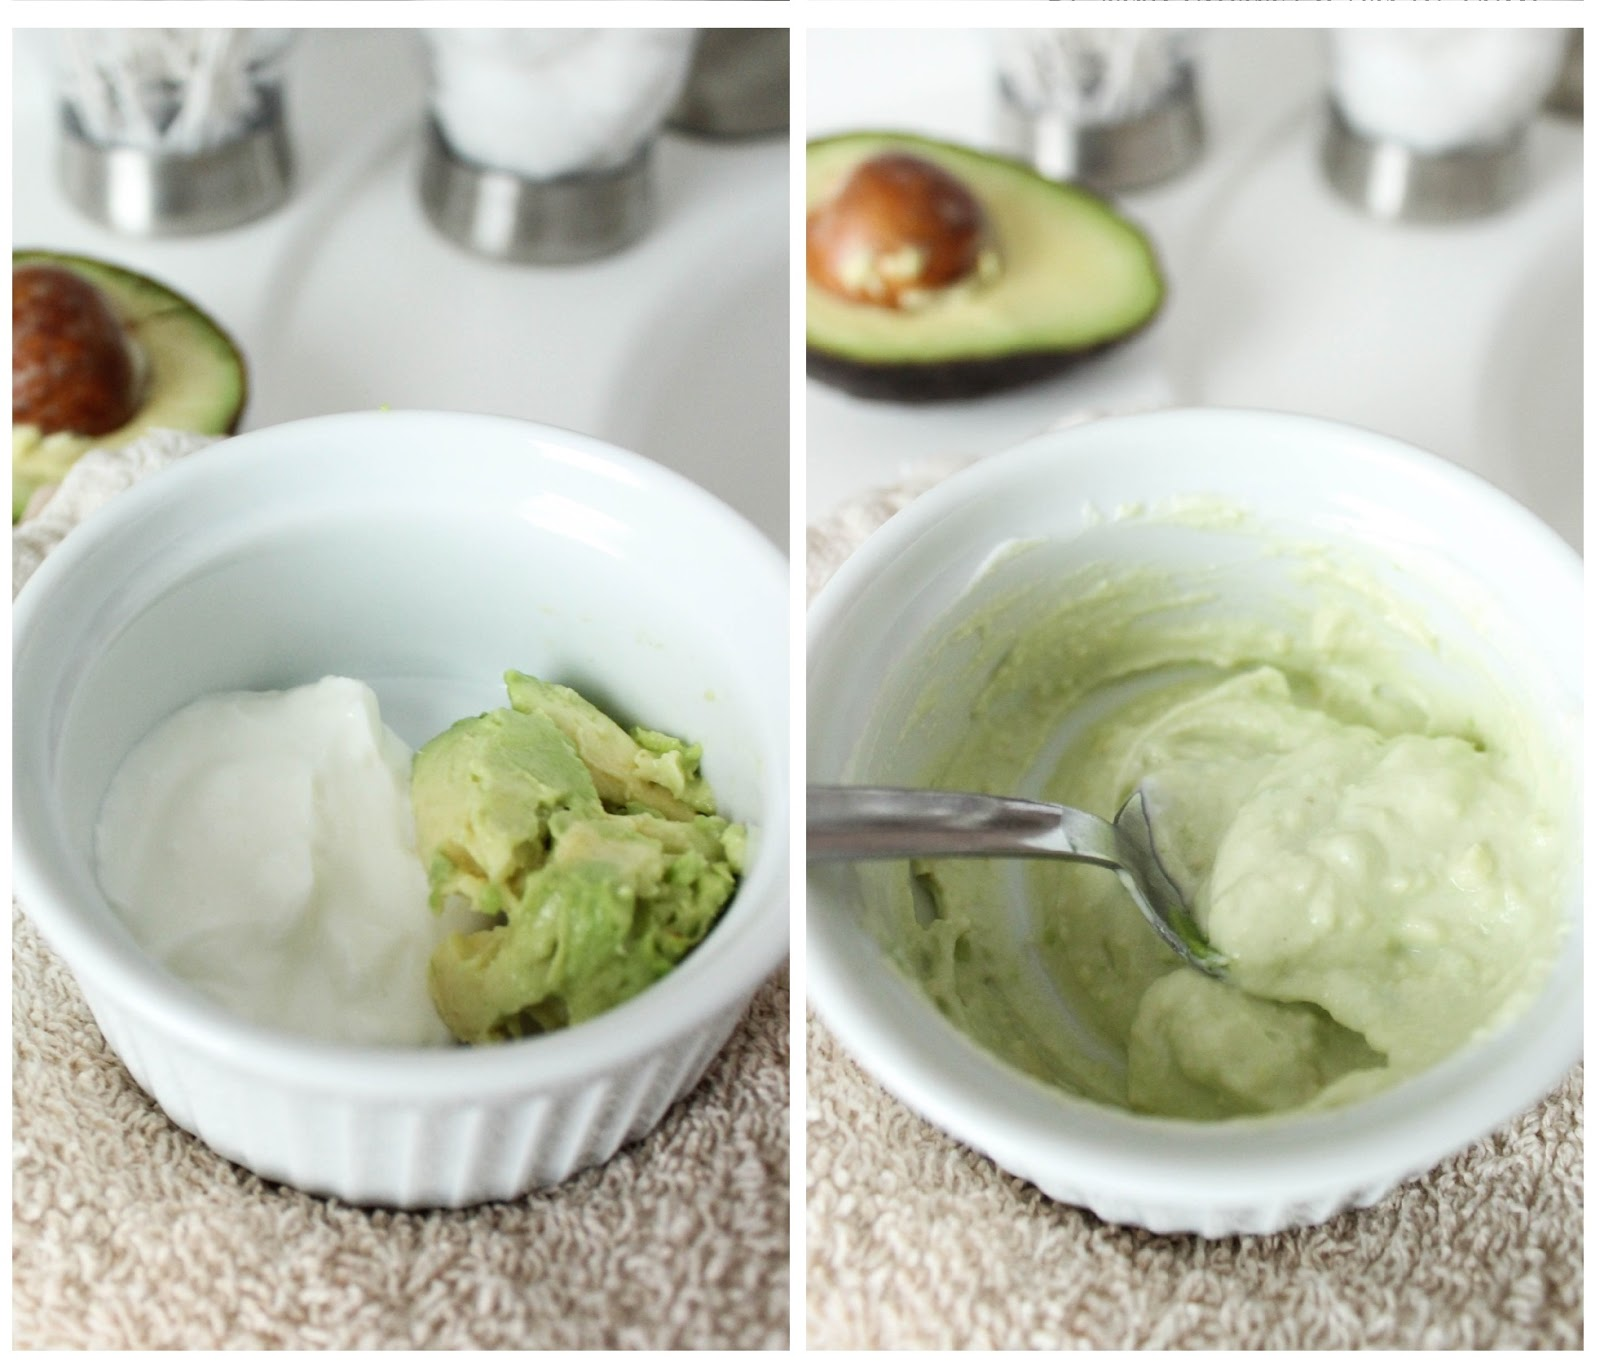 Mayonnaise and Avocado Mask Treatment For Damaged Hair